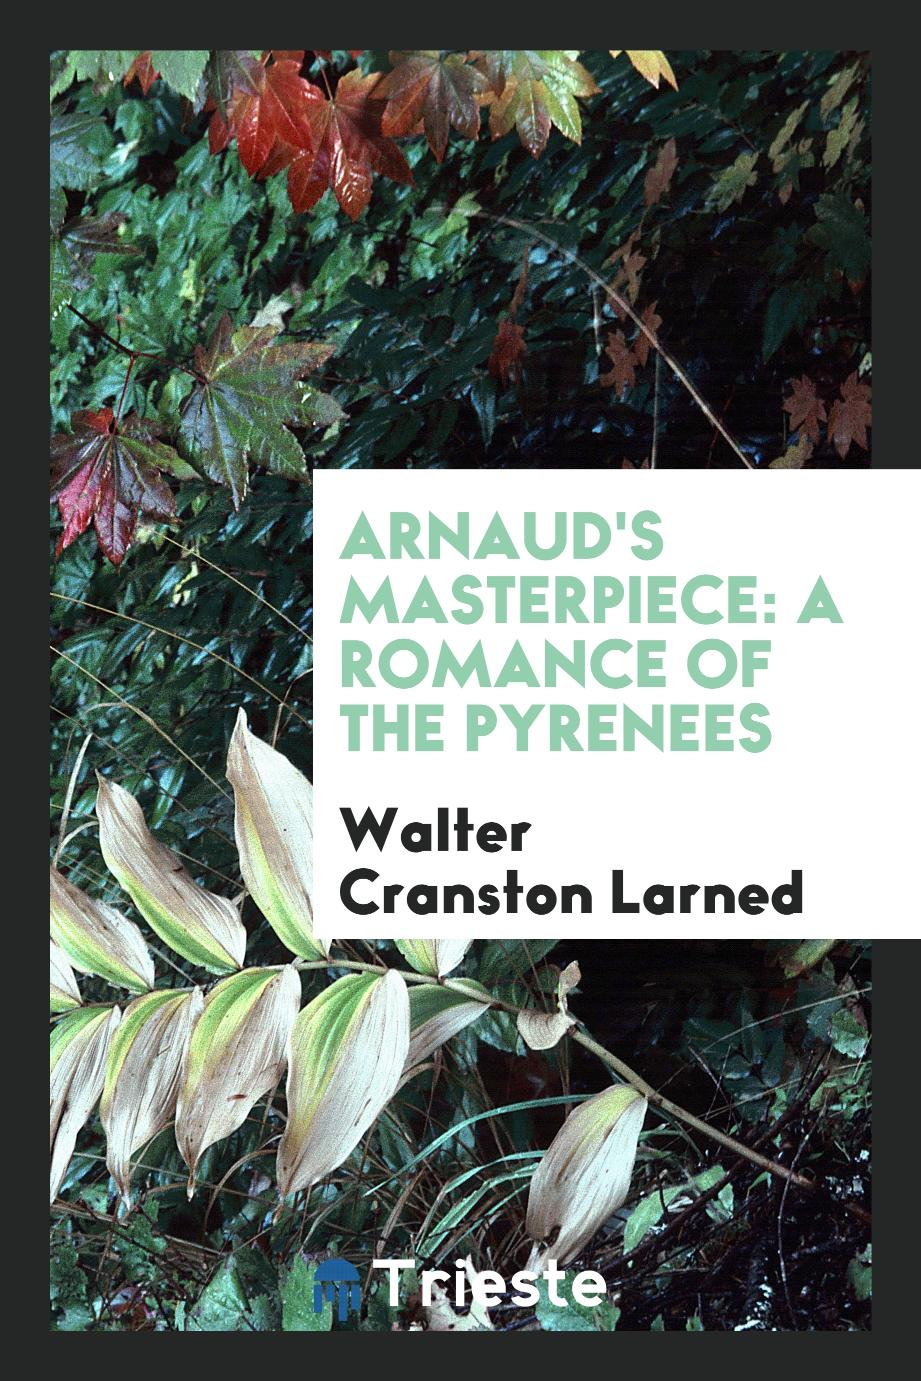 Arnaud's Masterpiece: A Romance of the Pyrenees